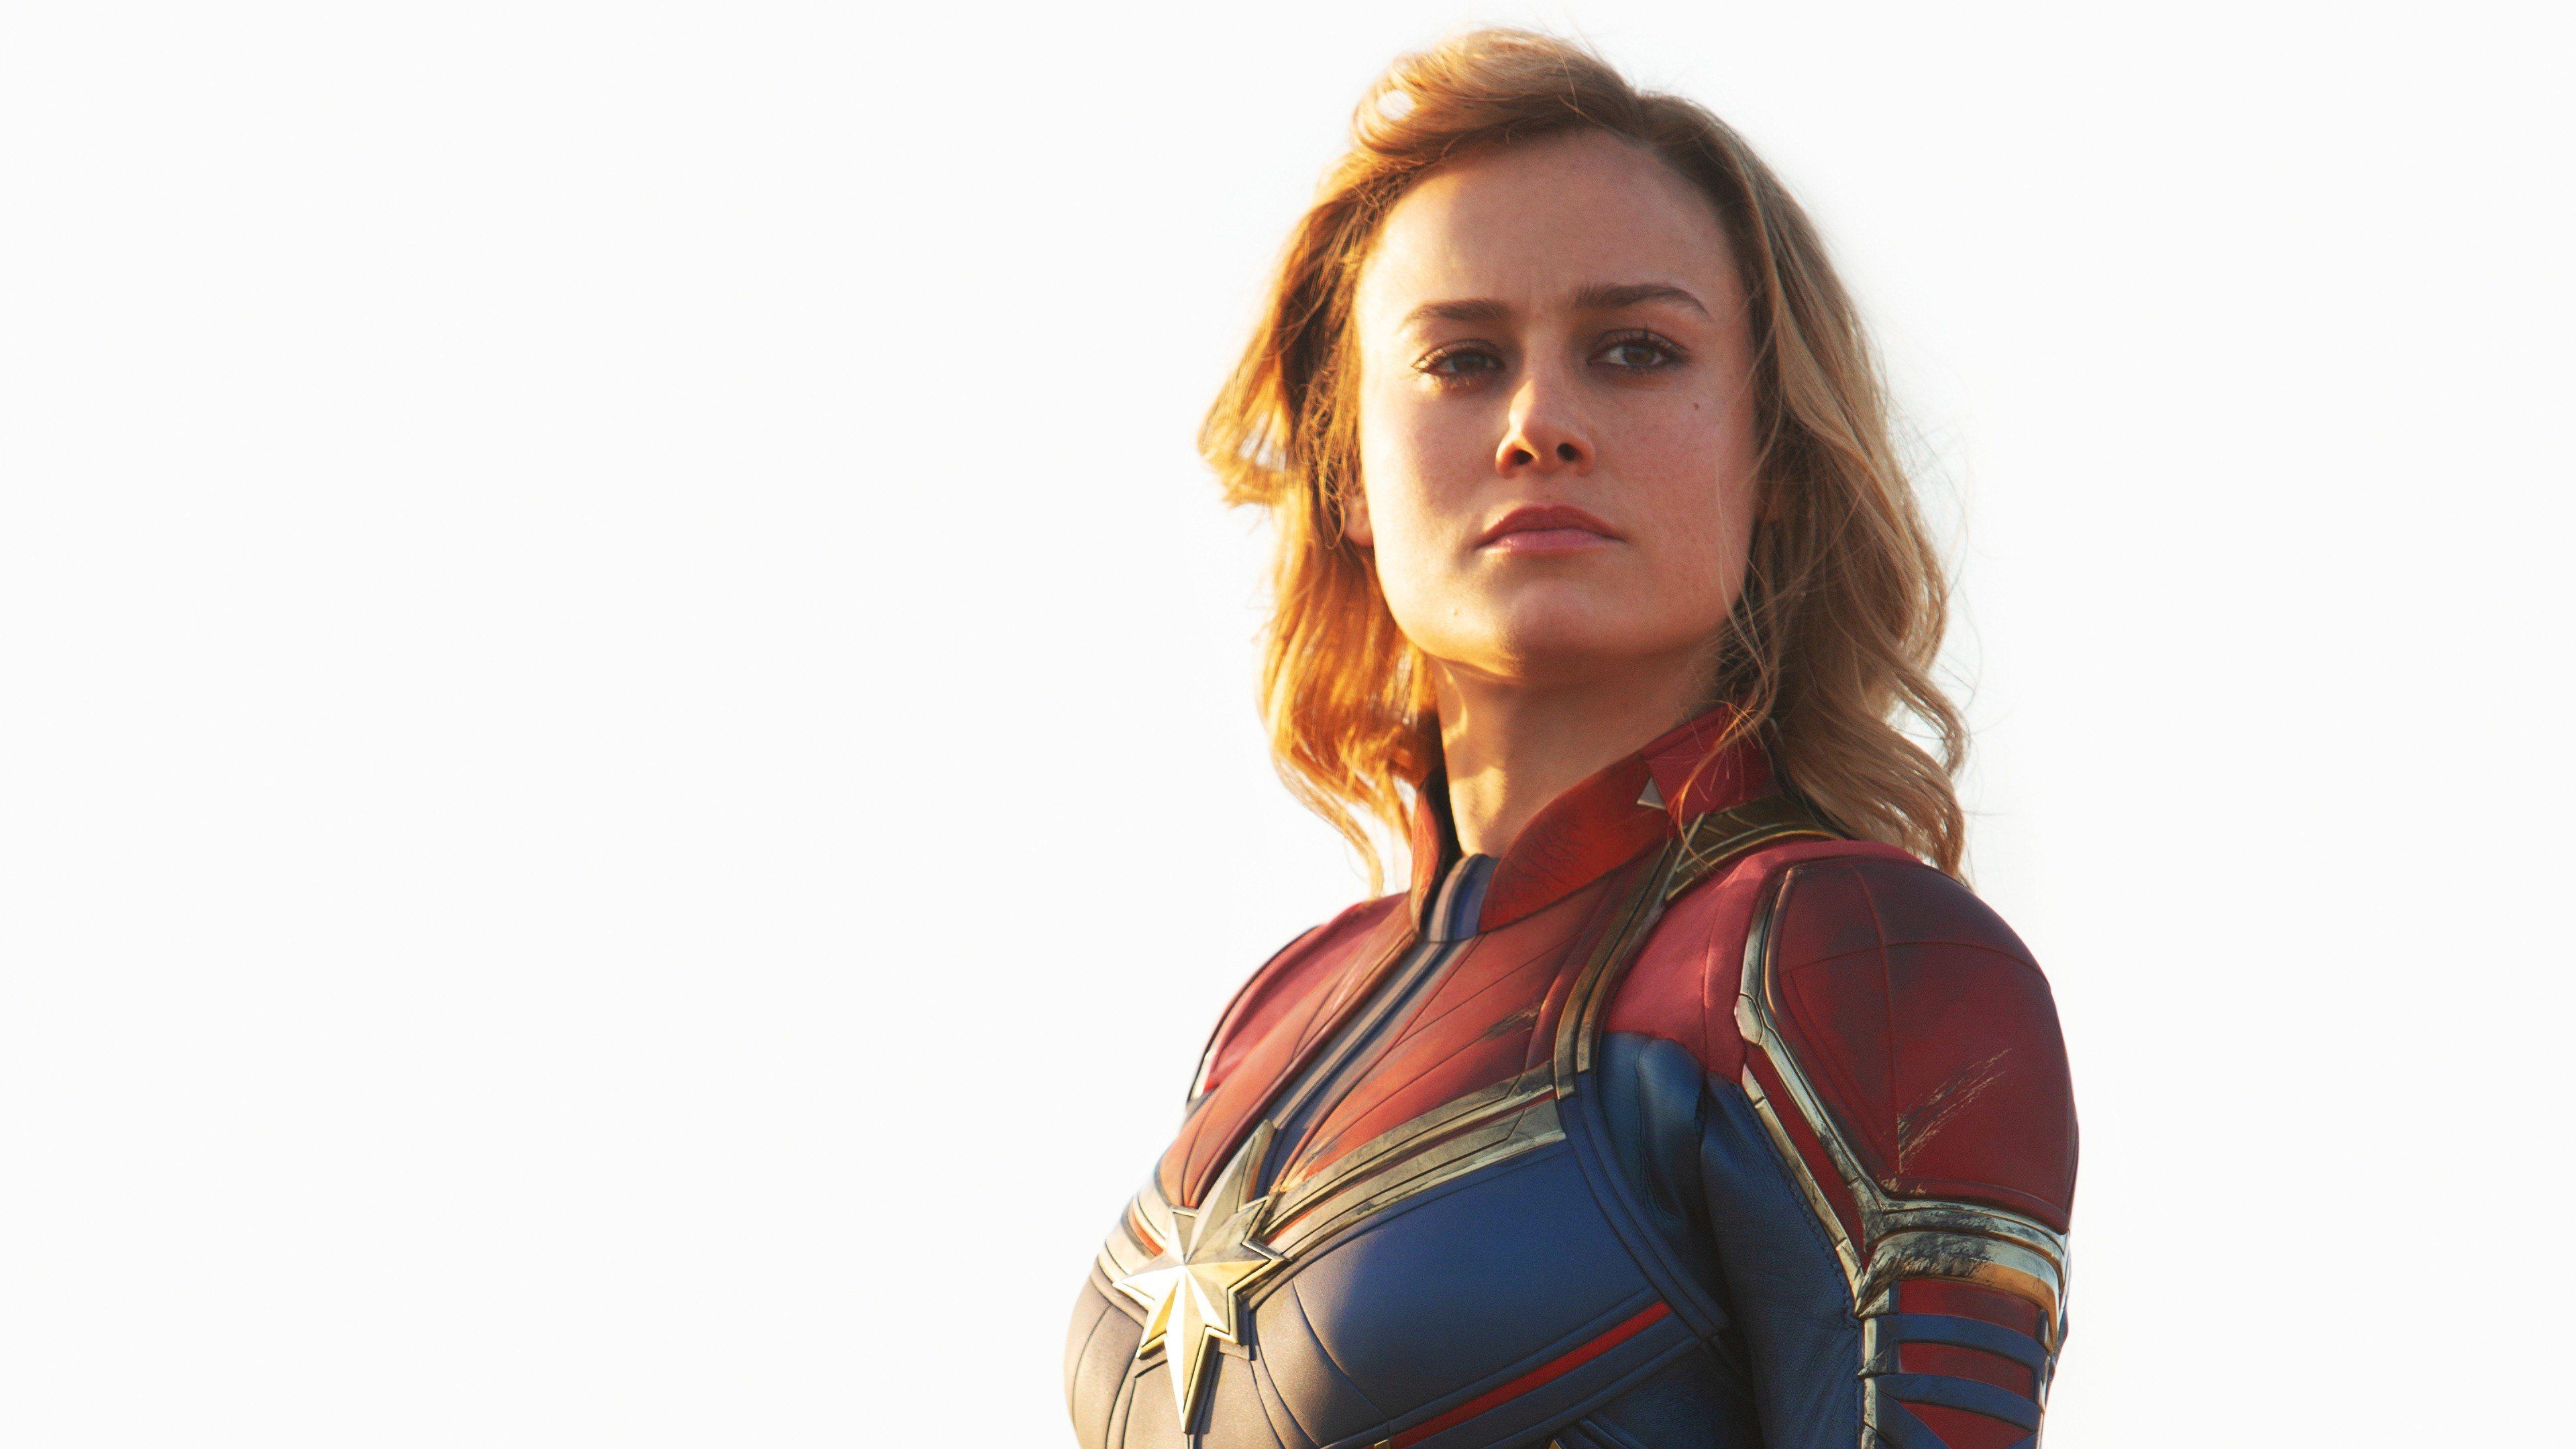 3840x2160 4K Carol Danvers Captain Marvel Desktop HD Wallpaper 39935 ...